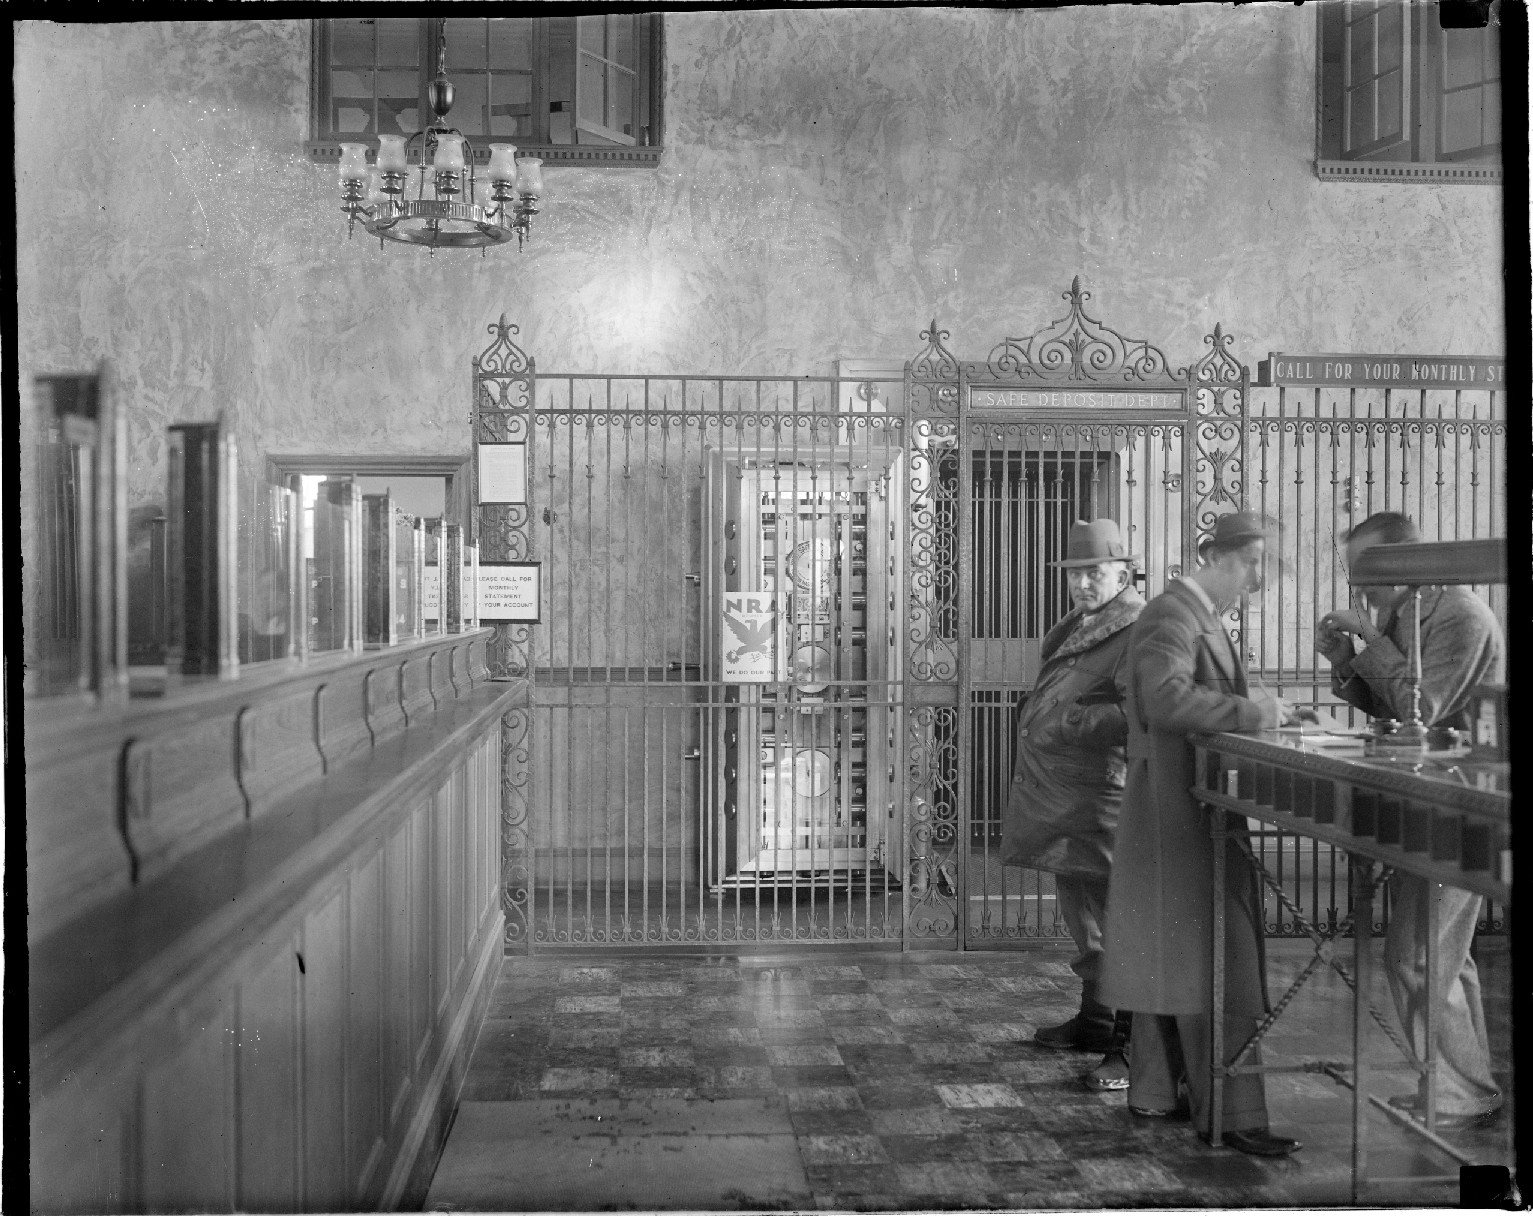 A man prepares to rob a bank in Massachusetts, circa 1934. Image from the Boston Public Library.